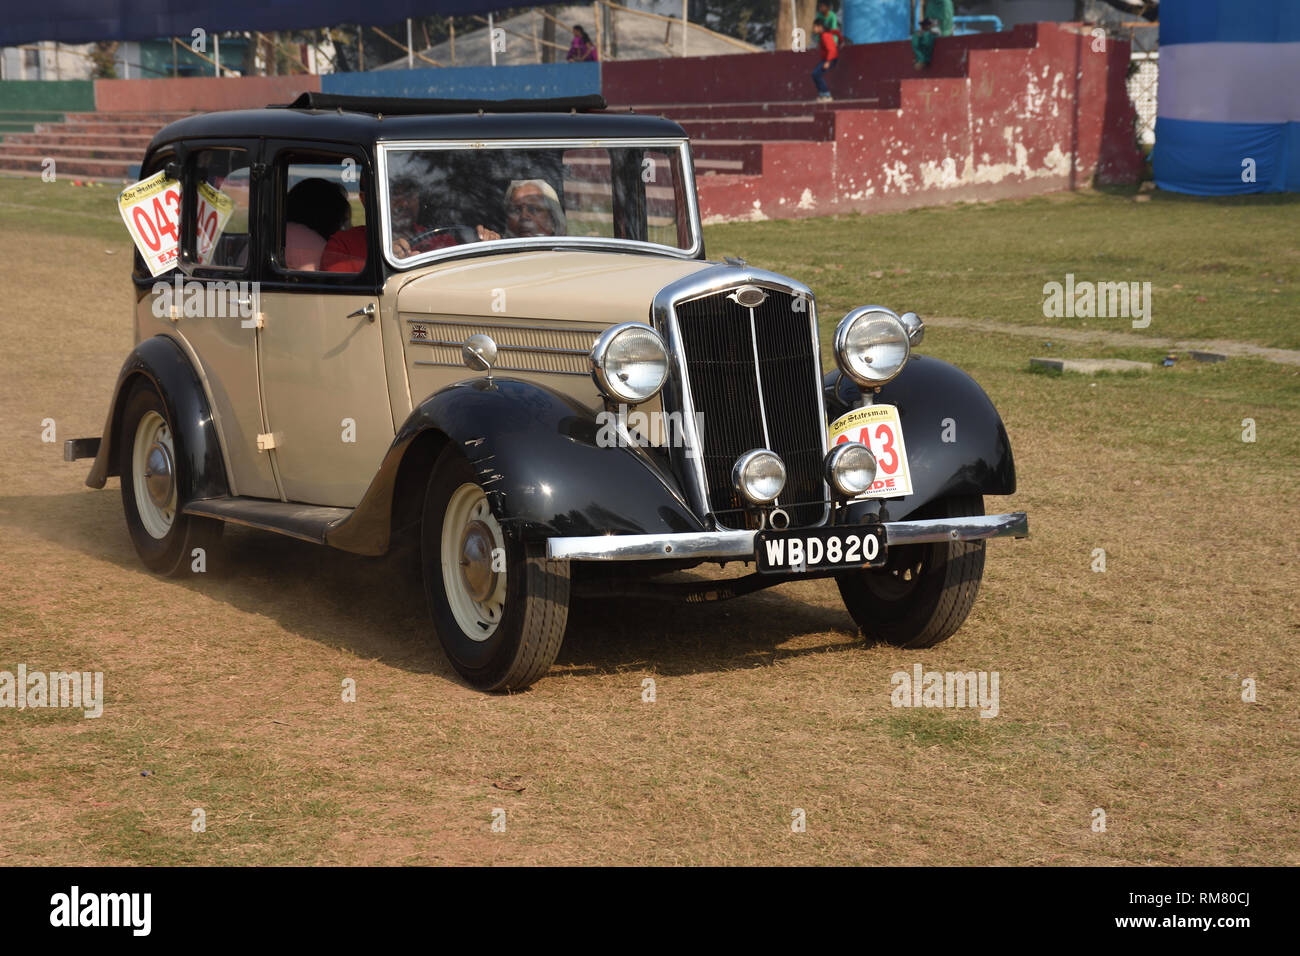 1936 Wolseley NF car with 14 hp and 6 cylinder engine, WBD 820 India. - Stock Image